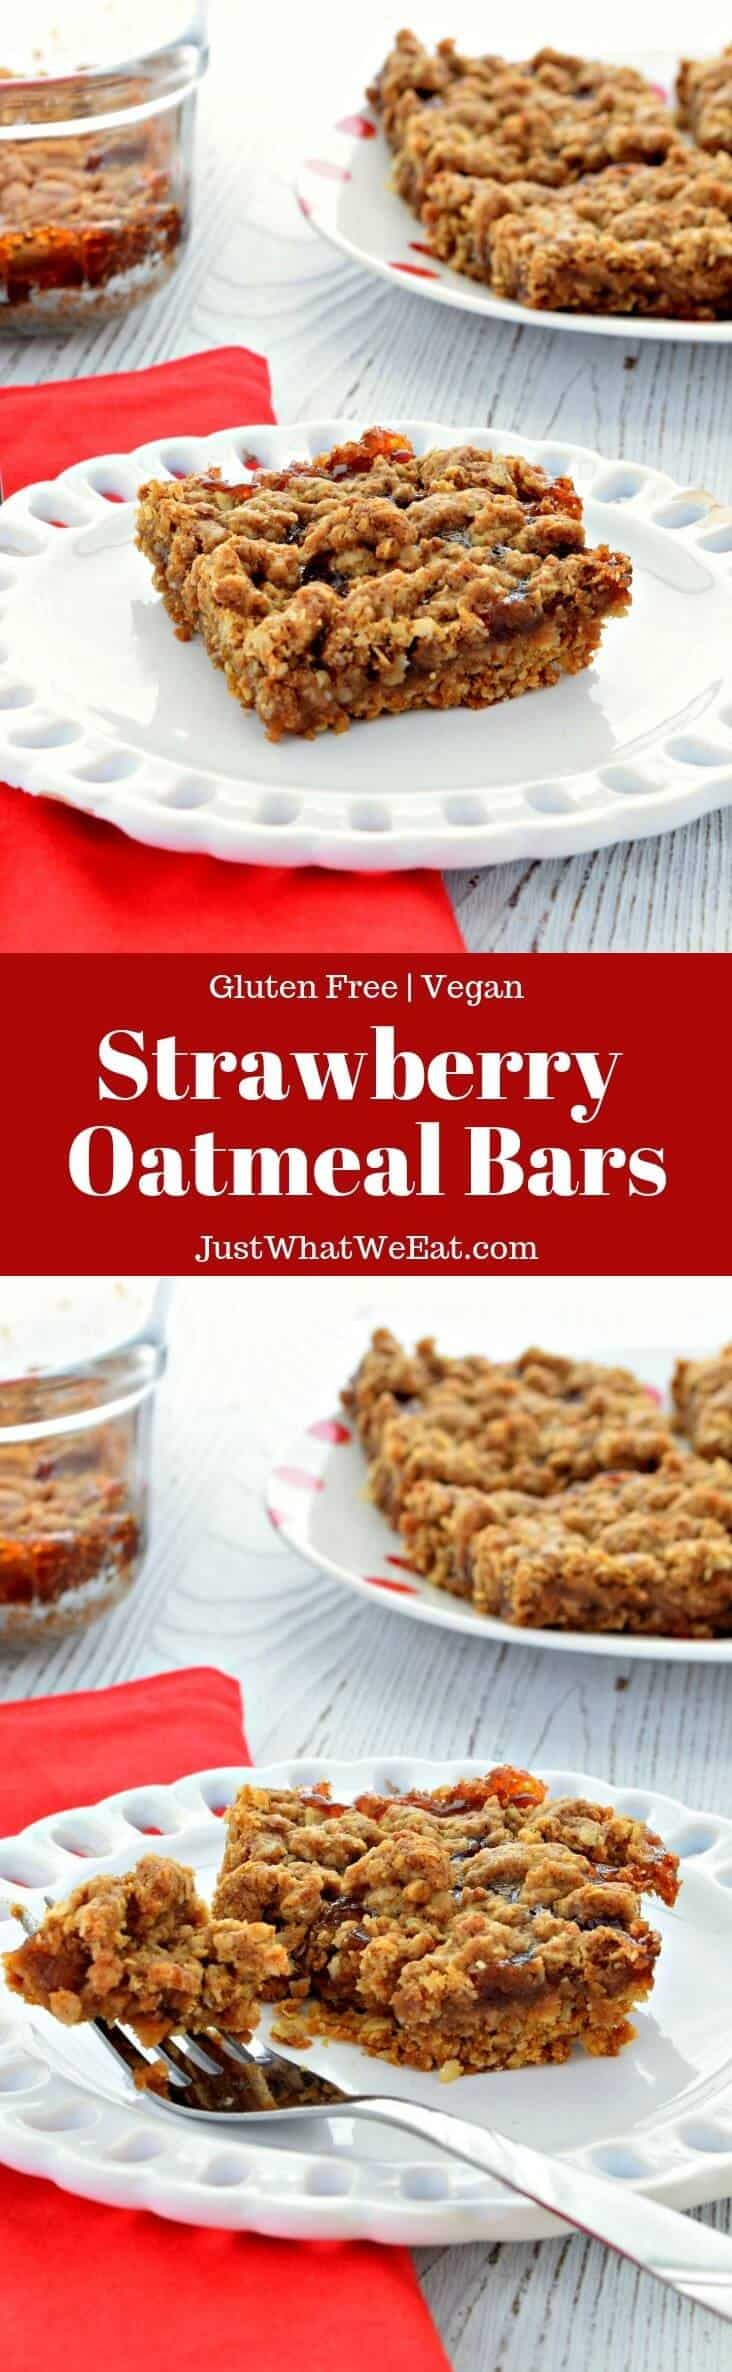 Strawberry Oatmeal Bars - Gluten Free, Vegan